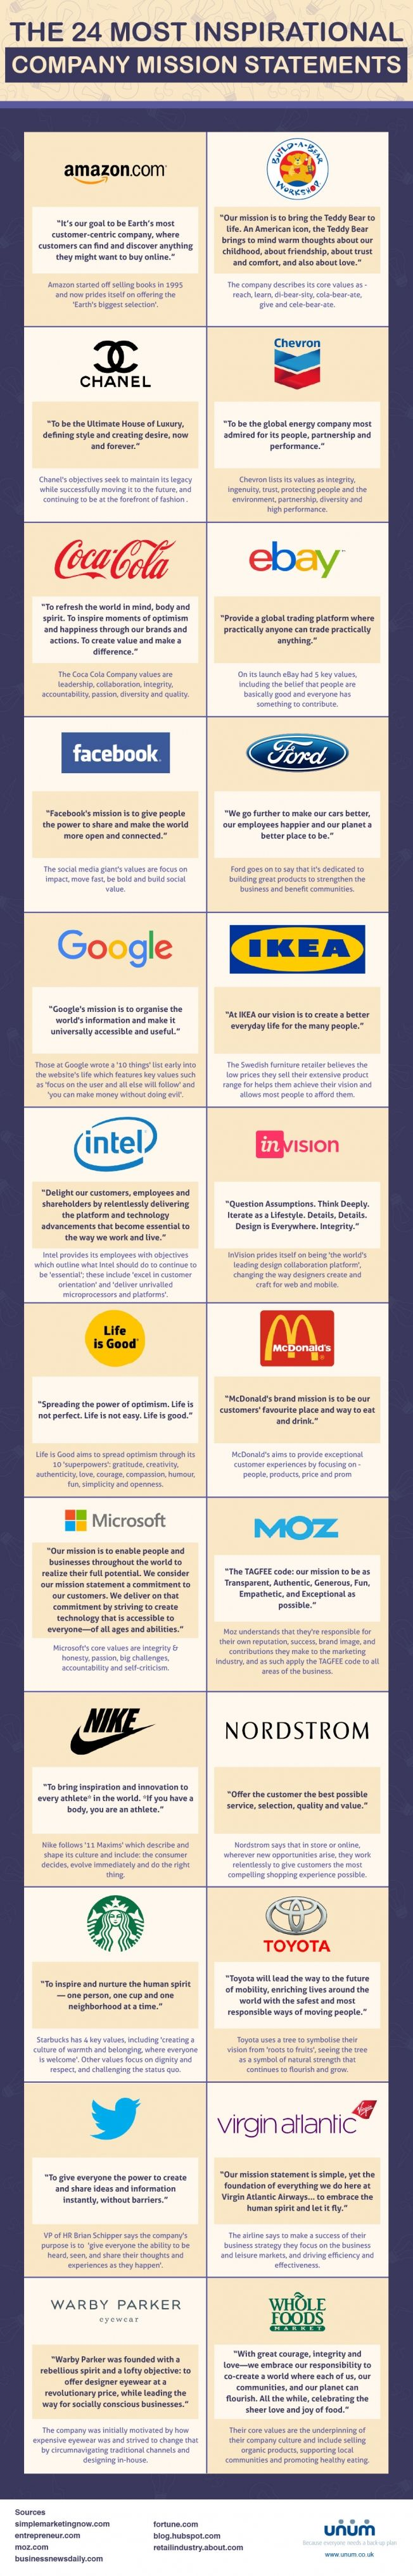 Adweek Infographic: The 24 Most Inspirational Company Mission Statements